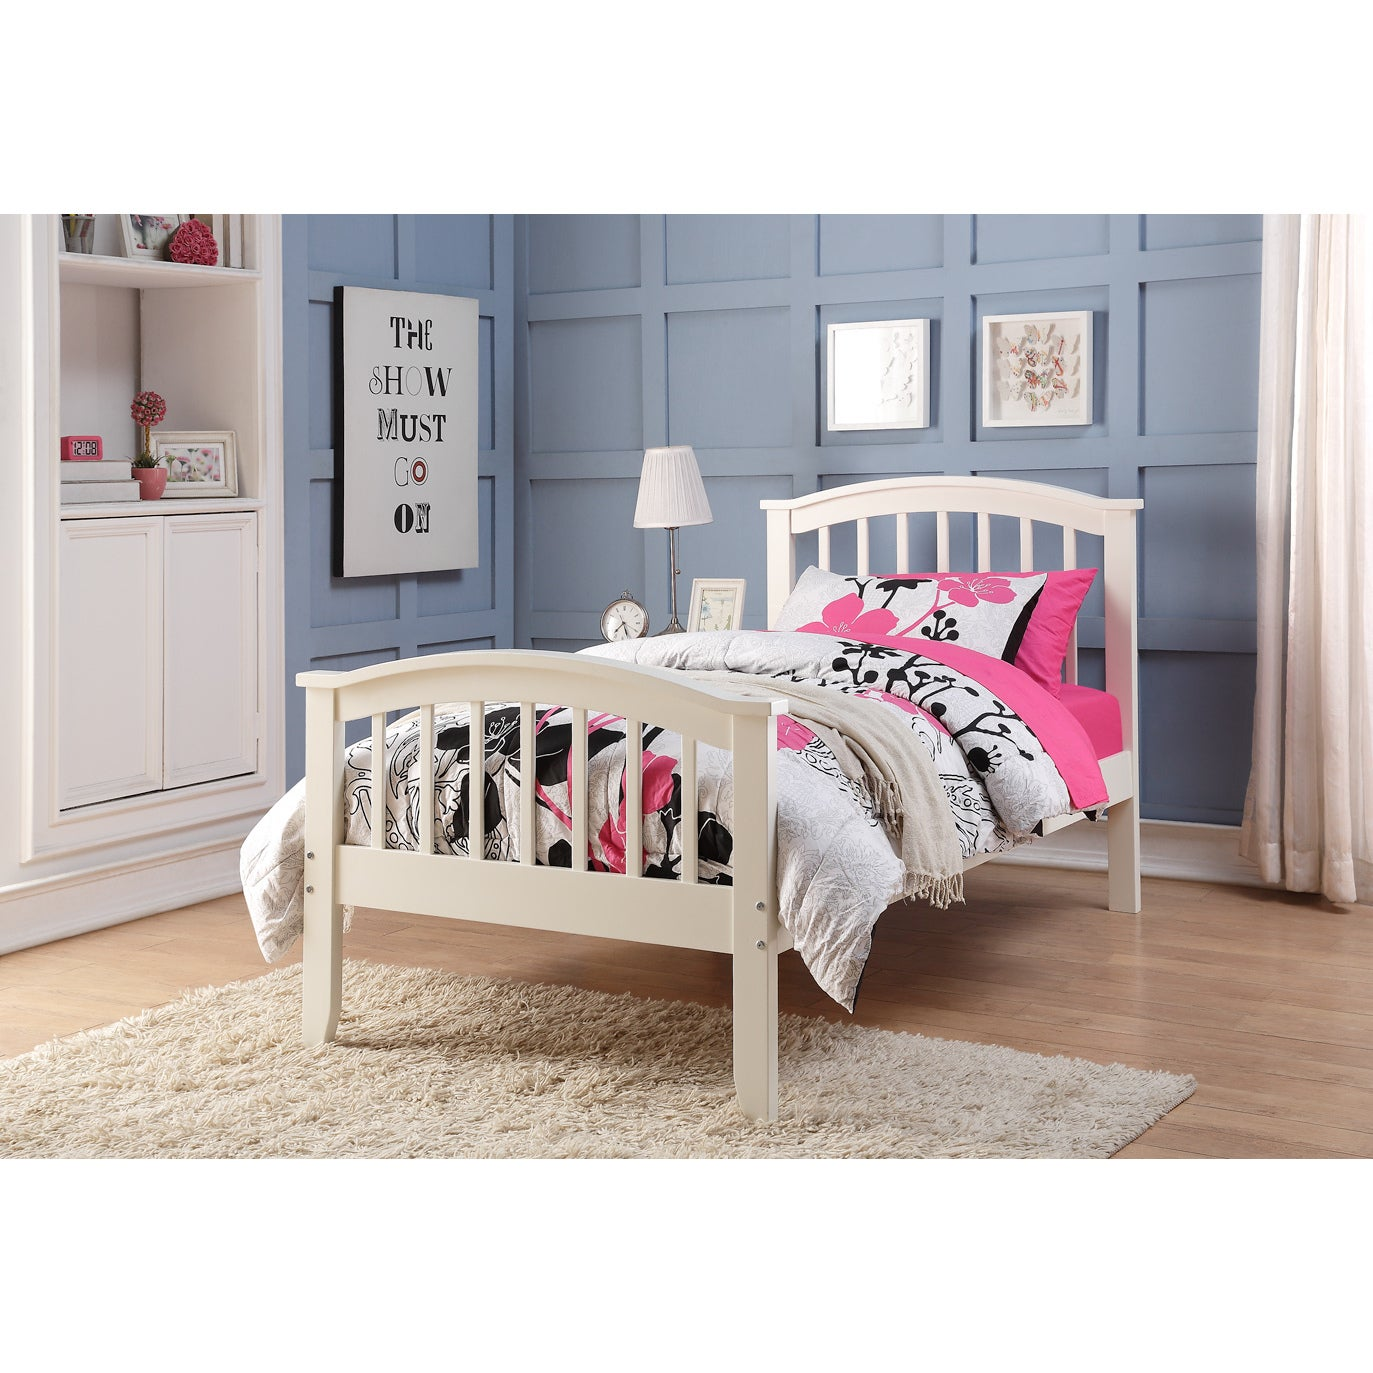 Donco Kids Columbia White Twin Bed Frame Overstock 11553276